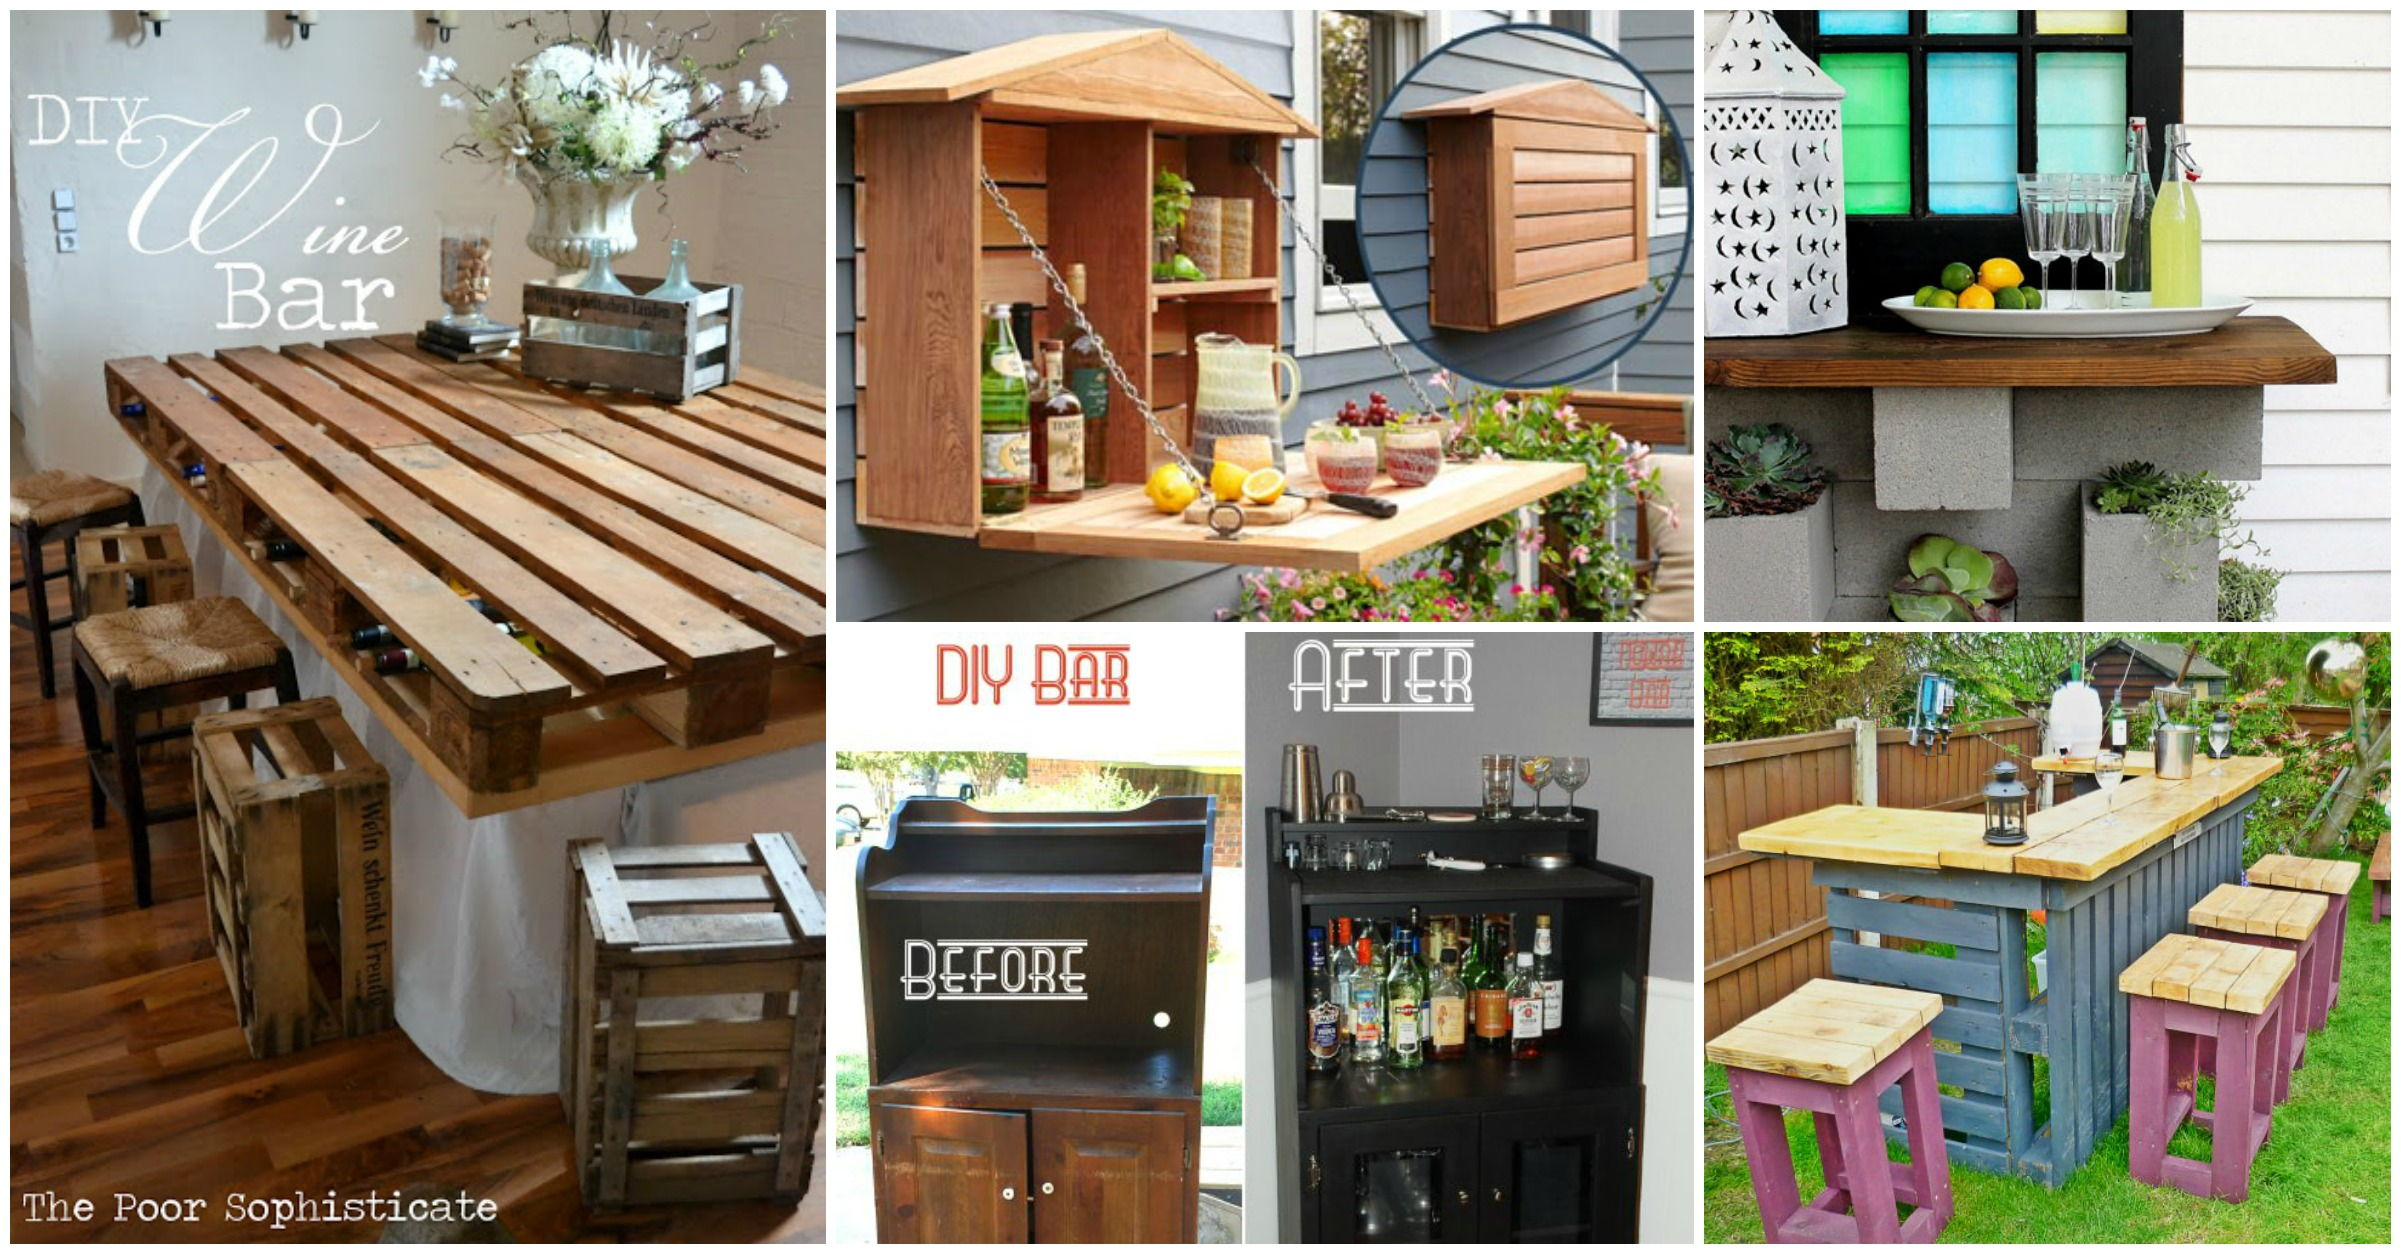 http://www.icreativeideas.com/wp-content/uploads/2015/04/30-Creative-DIY-Wine-Bars-for-Your-Home-and-Garden-ttt.jpg